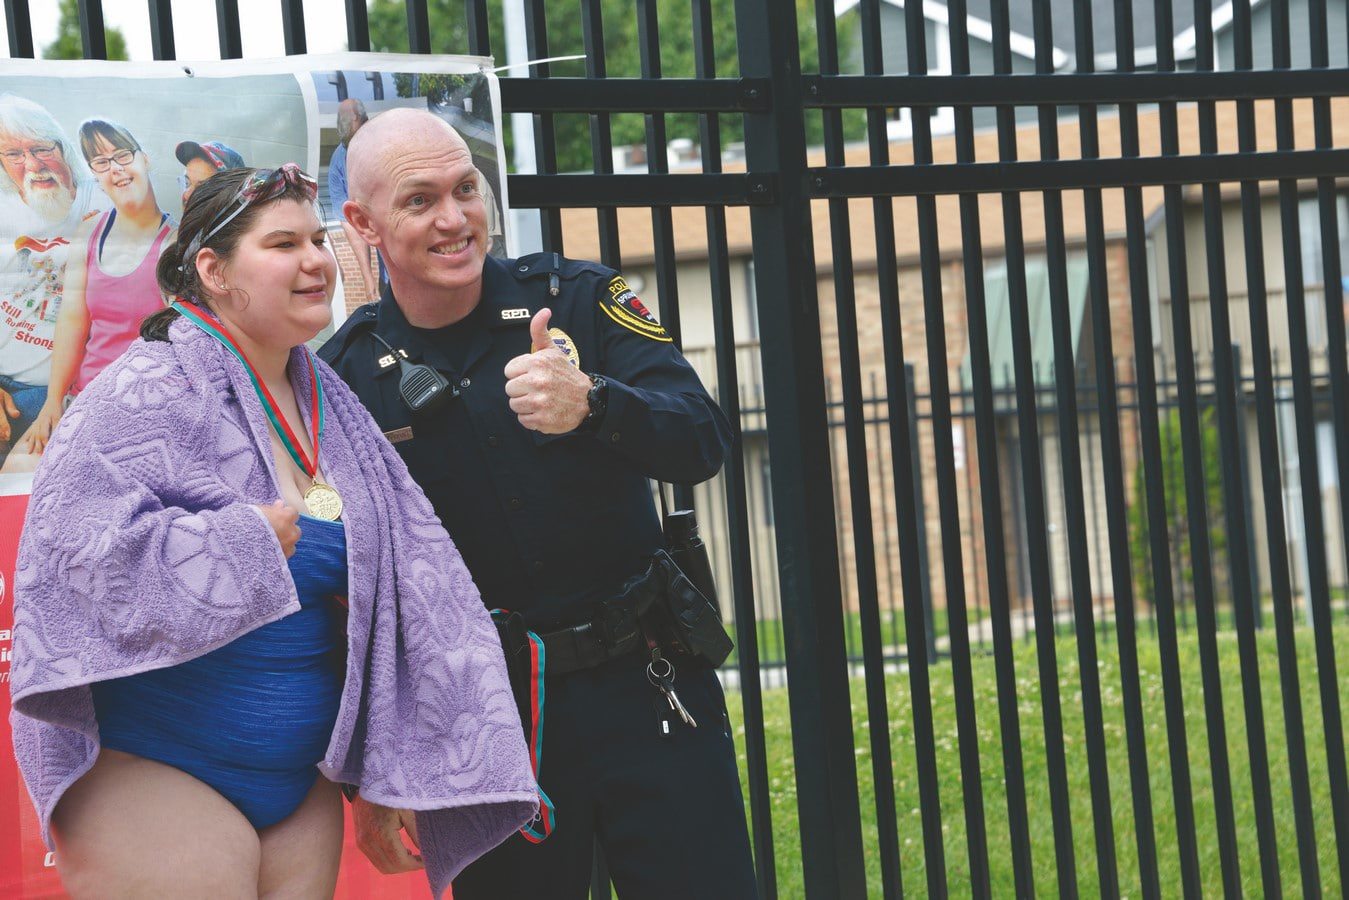 Aquatics athlete with gold medal around neck poses with police officer with their thumb up